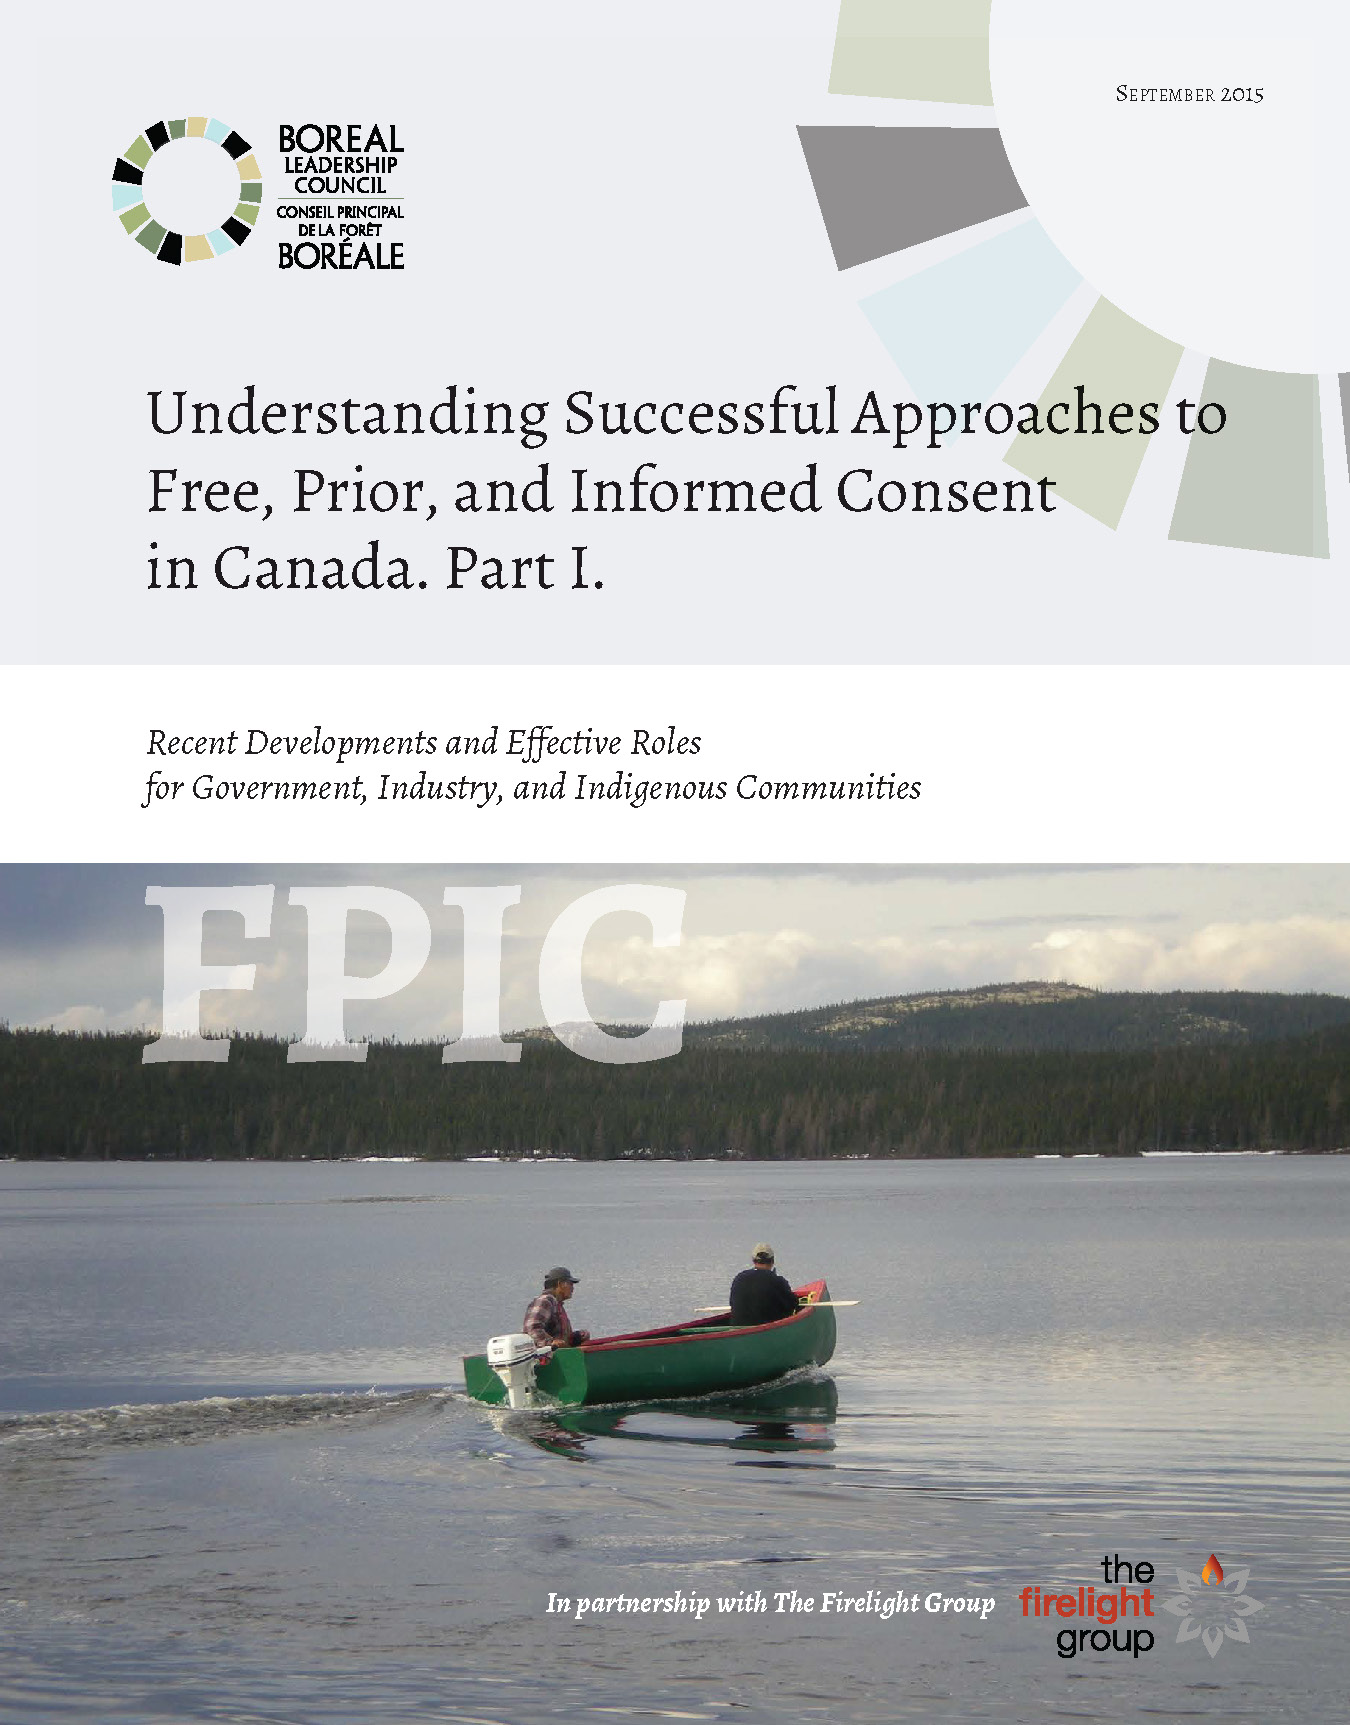 Cover_BLC_FPIC_Successes_Report_Sept_2015_E_150